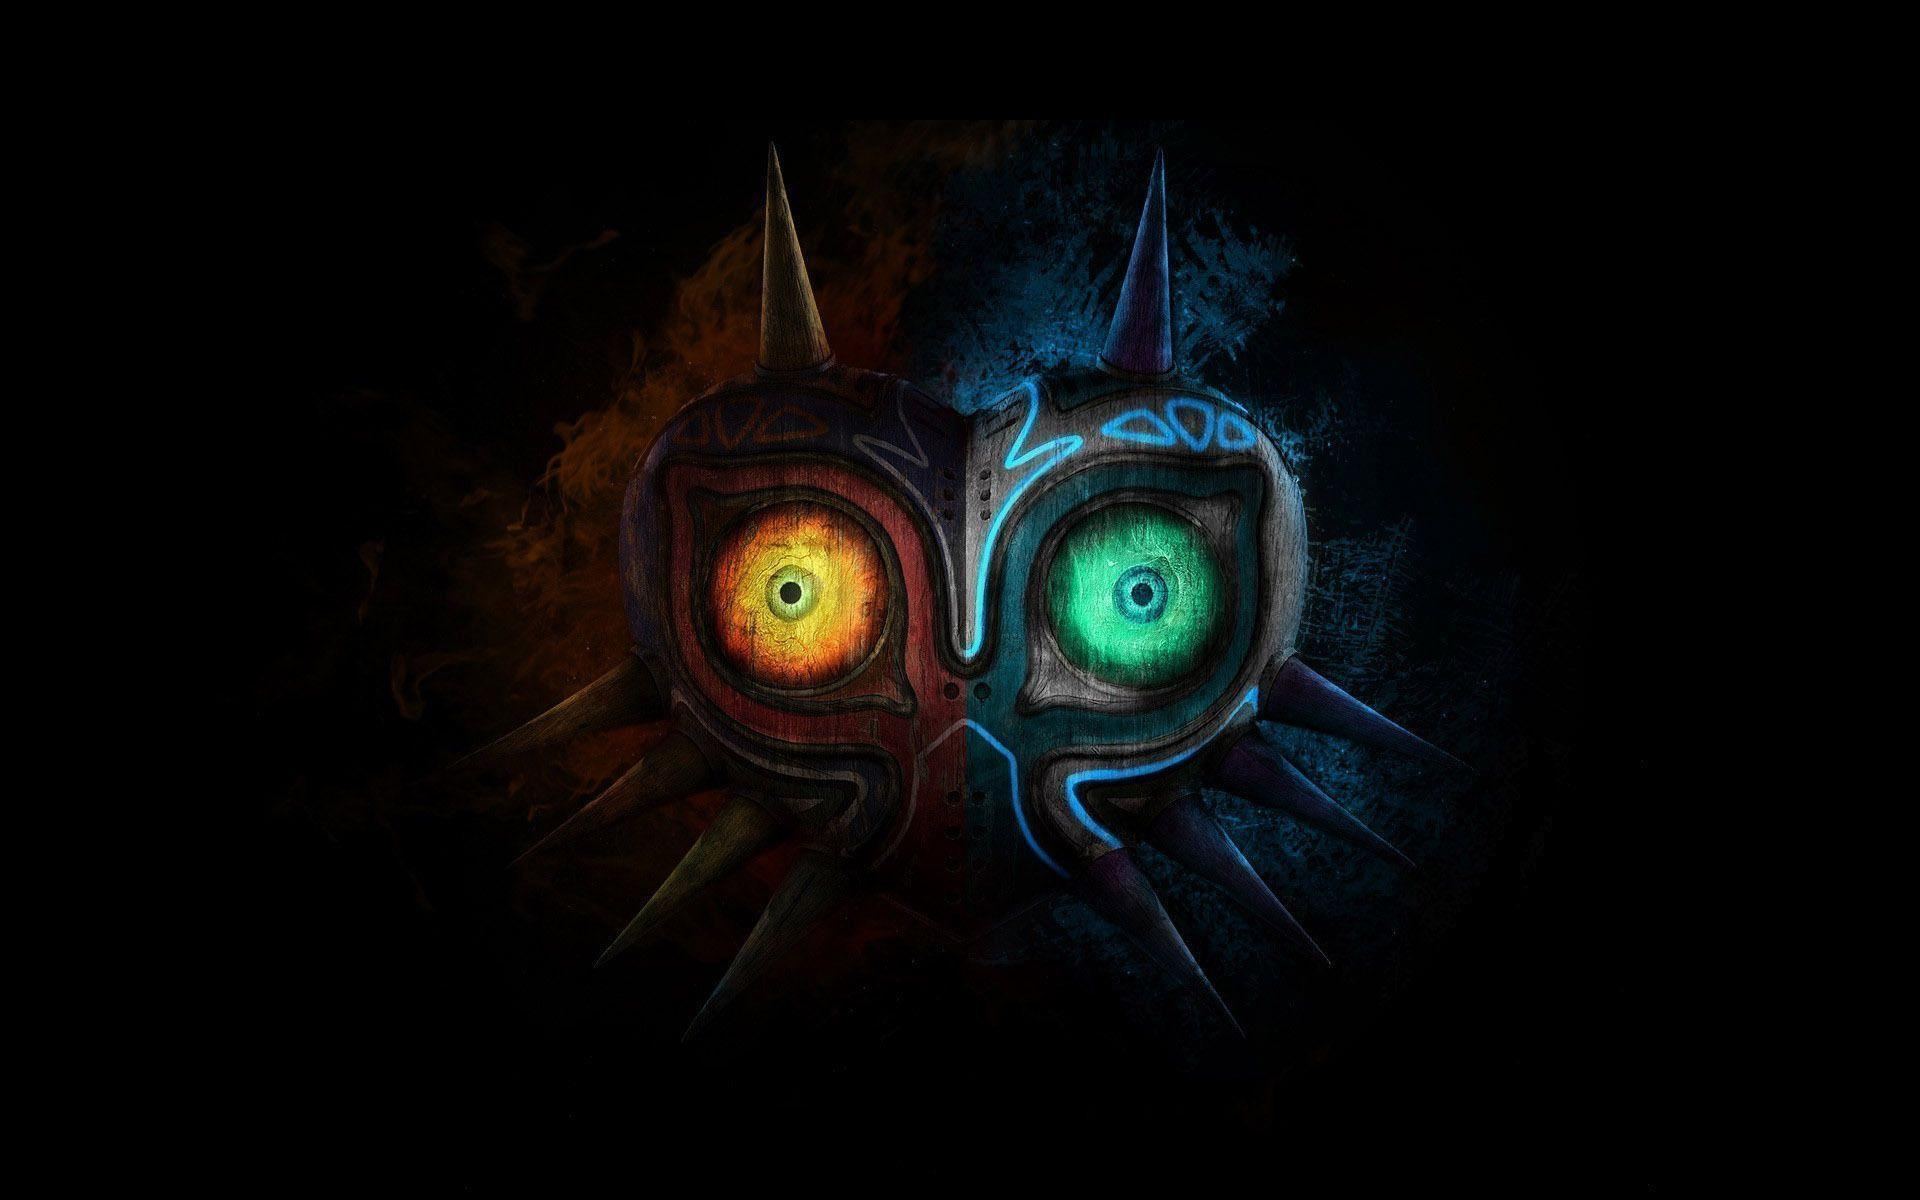 Hd wallpaper zelda - The Legend Of Zelda Majora Mask Full Hd Wallpaper Desktop Beraplan